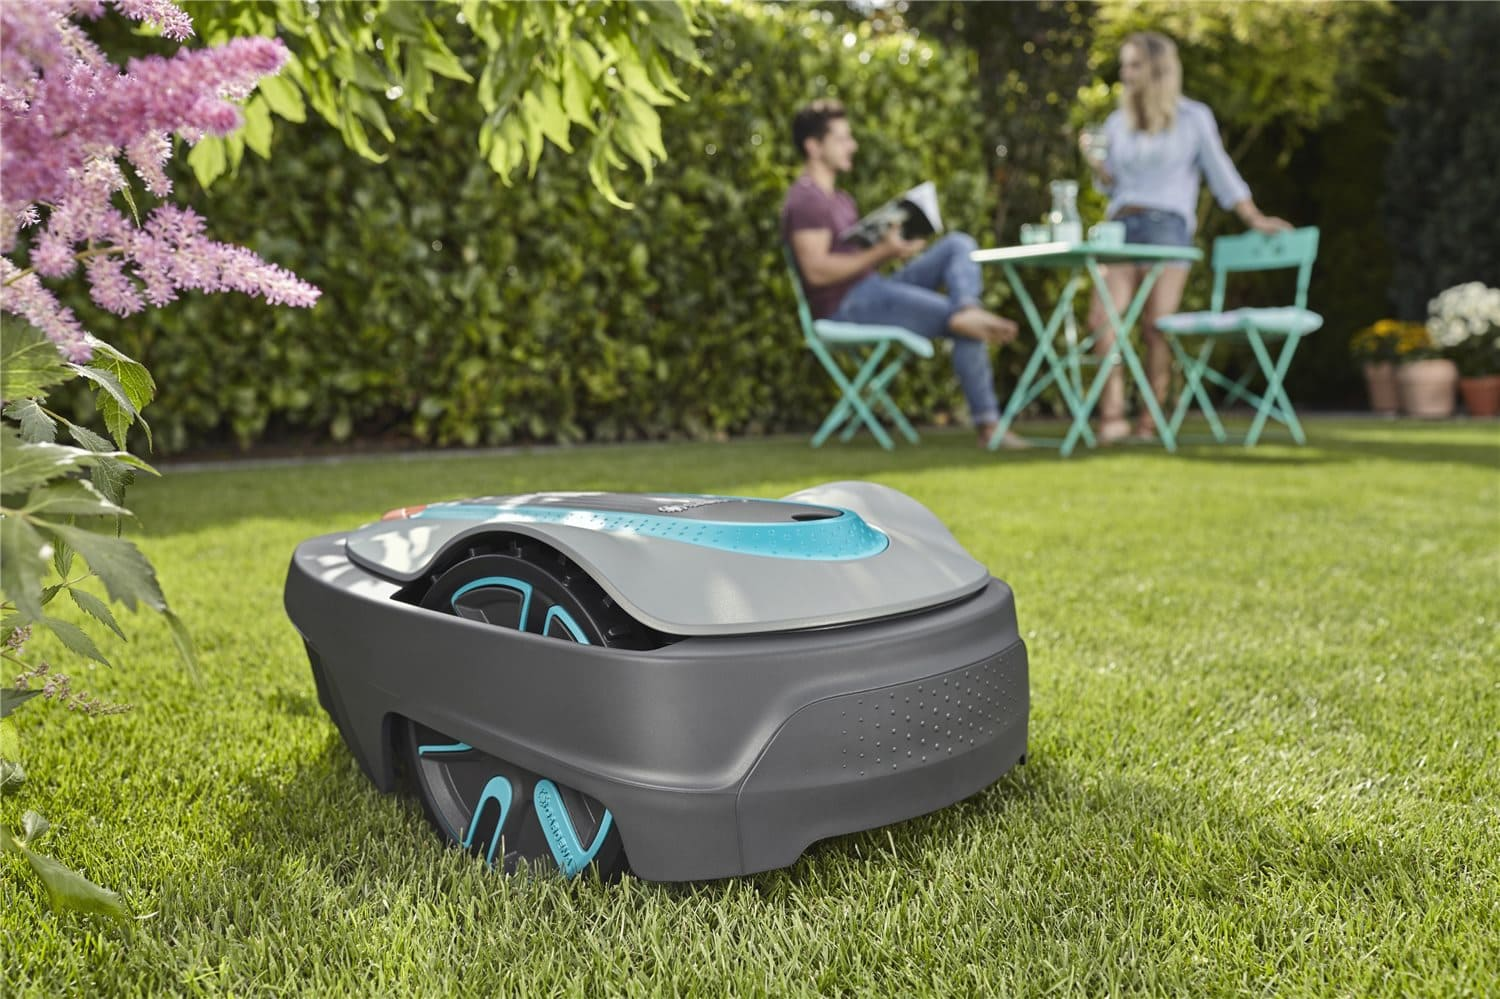 Tired with your overgrown backyard? You definitely need this bot to mow your lawn